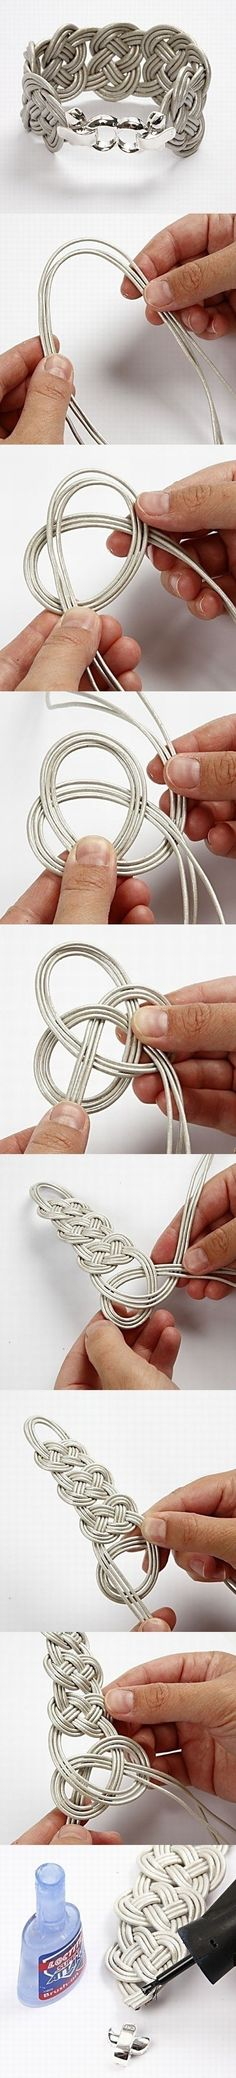 How to Make a Silver bracelet of your own?